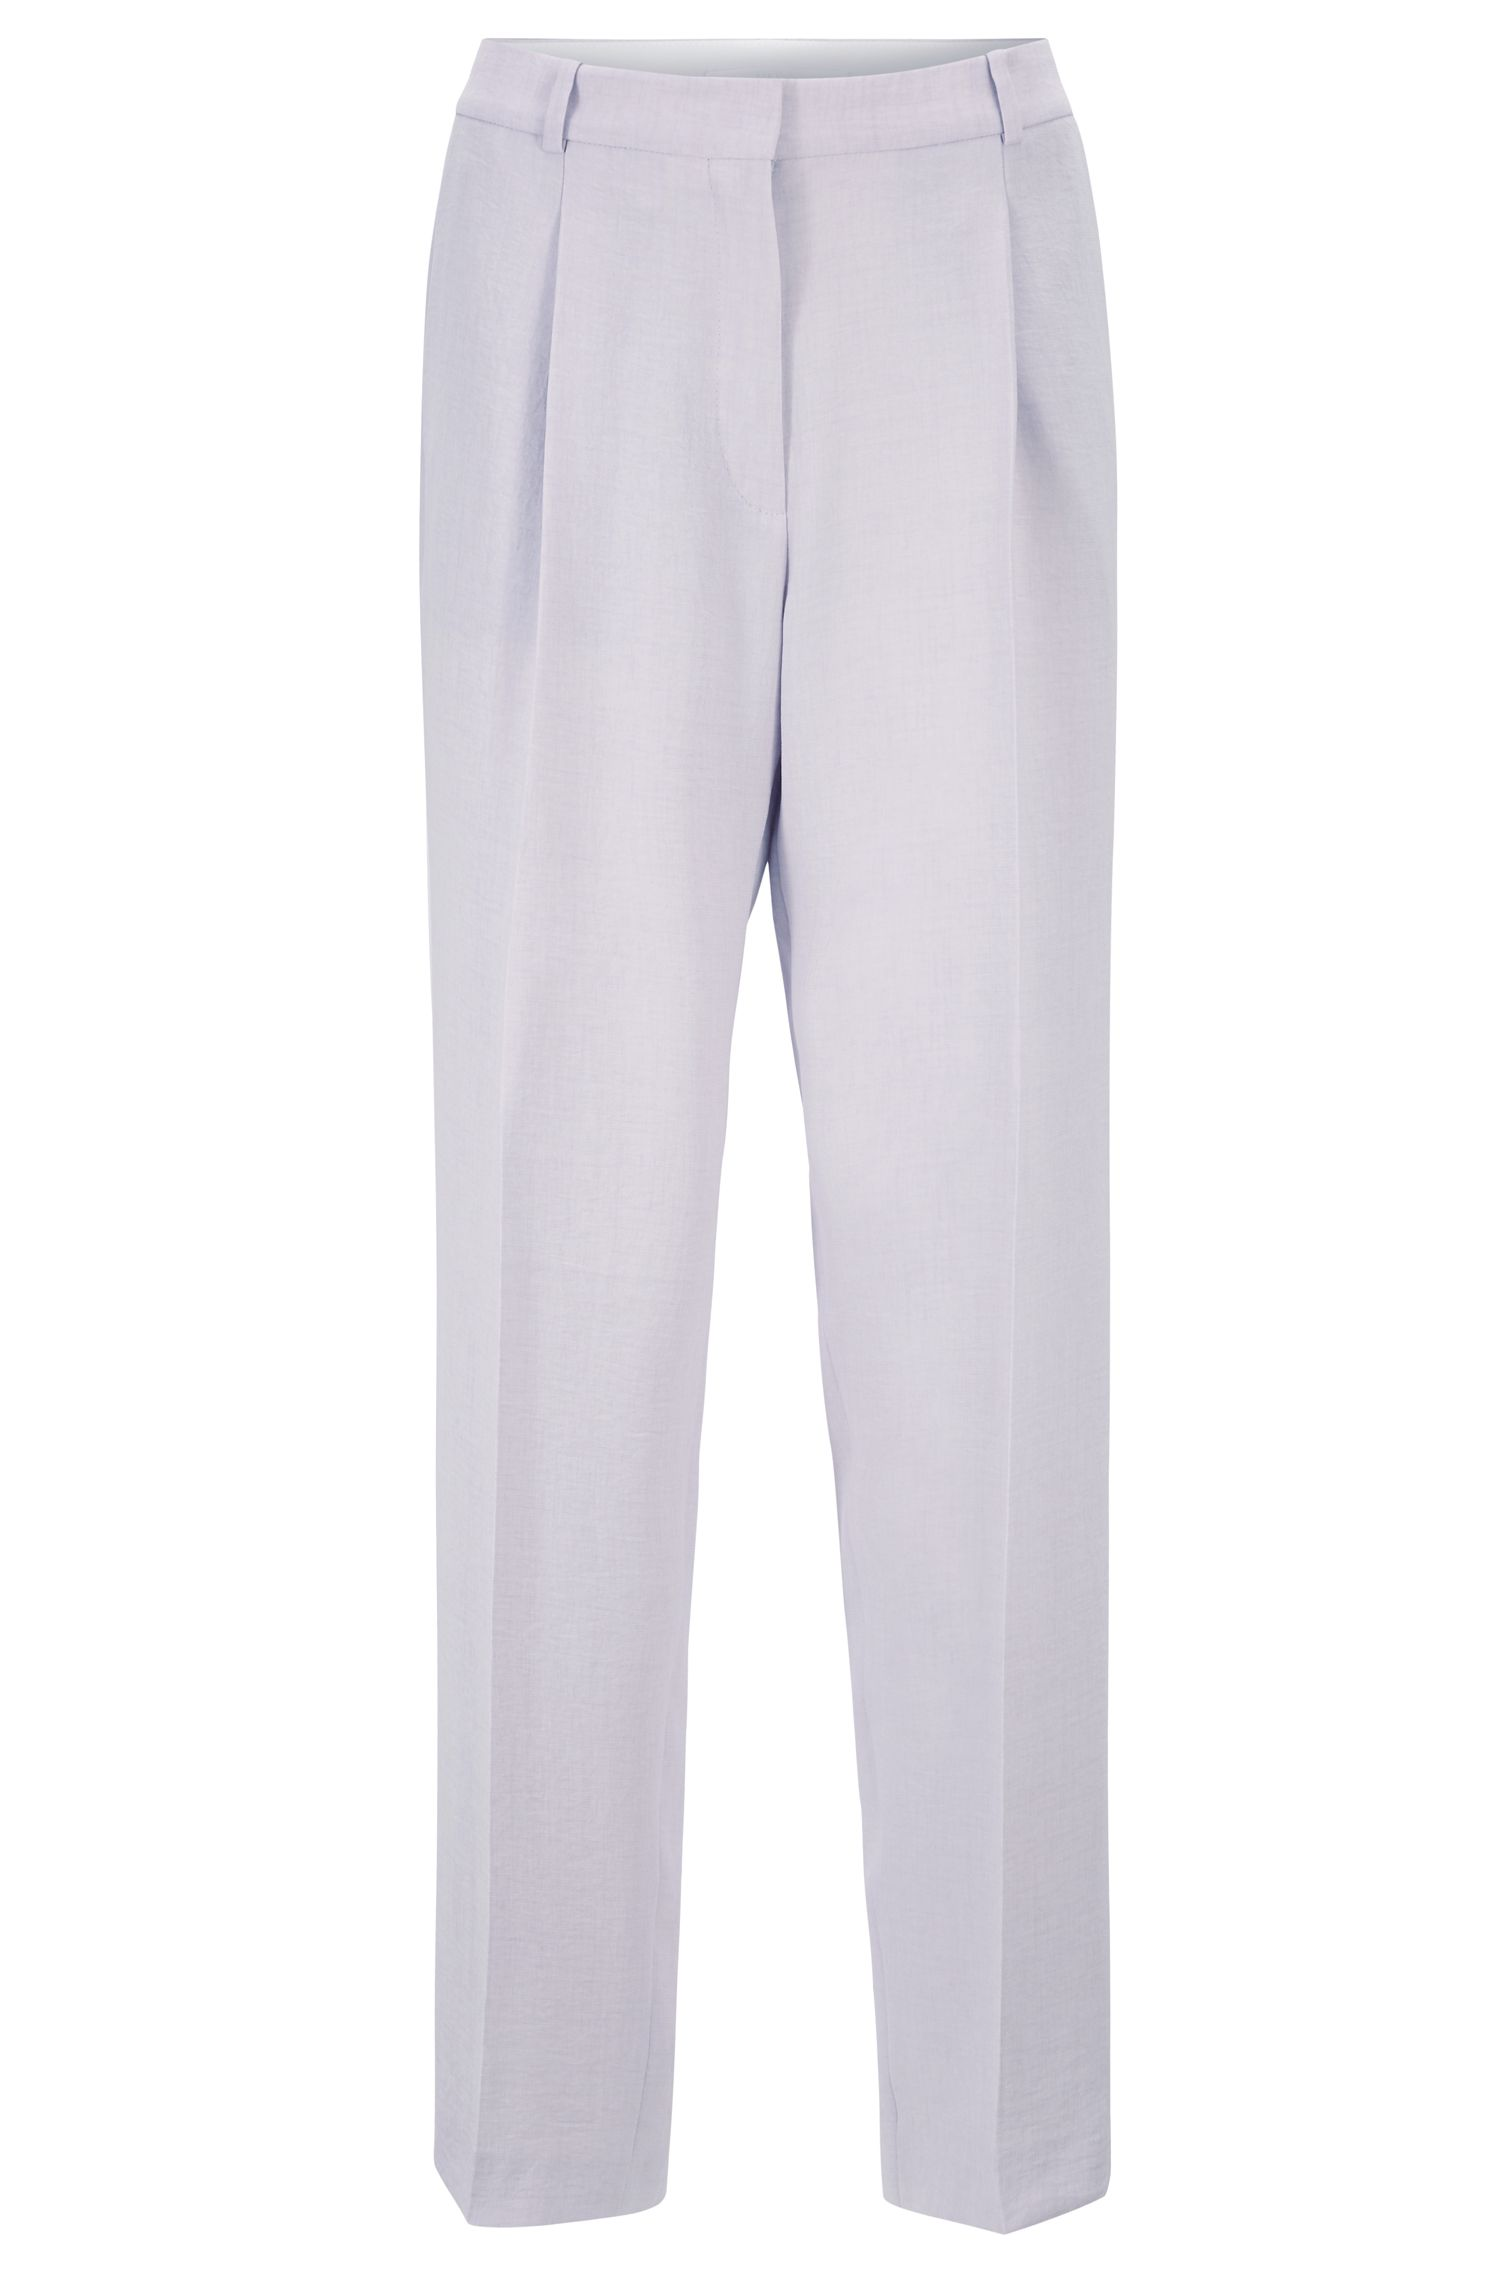 Pantaloni relaxed fit in tessuto effetto lino, Luce viola